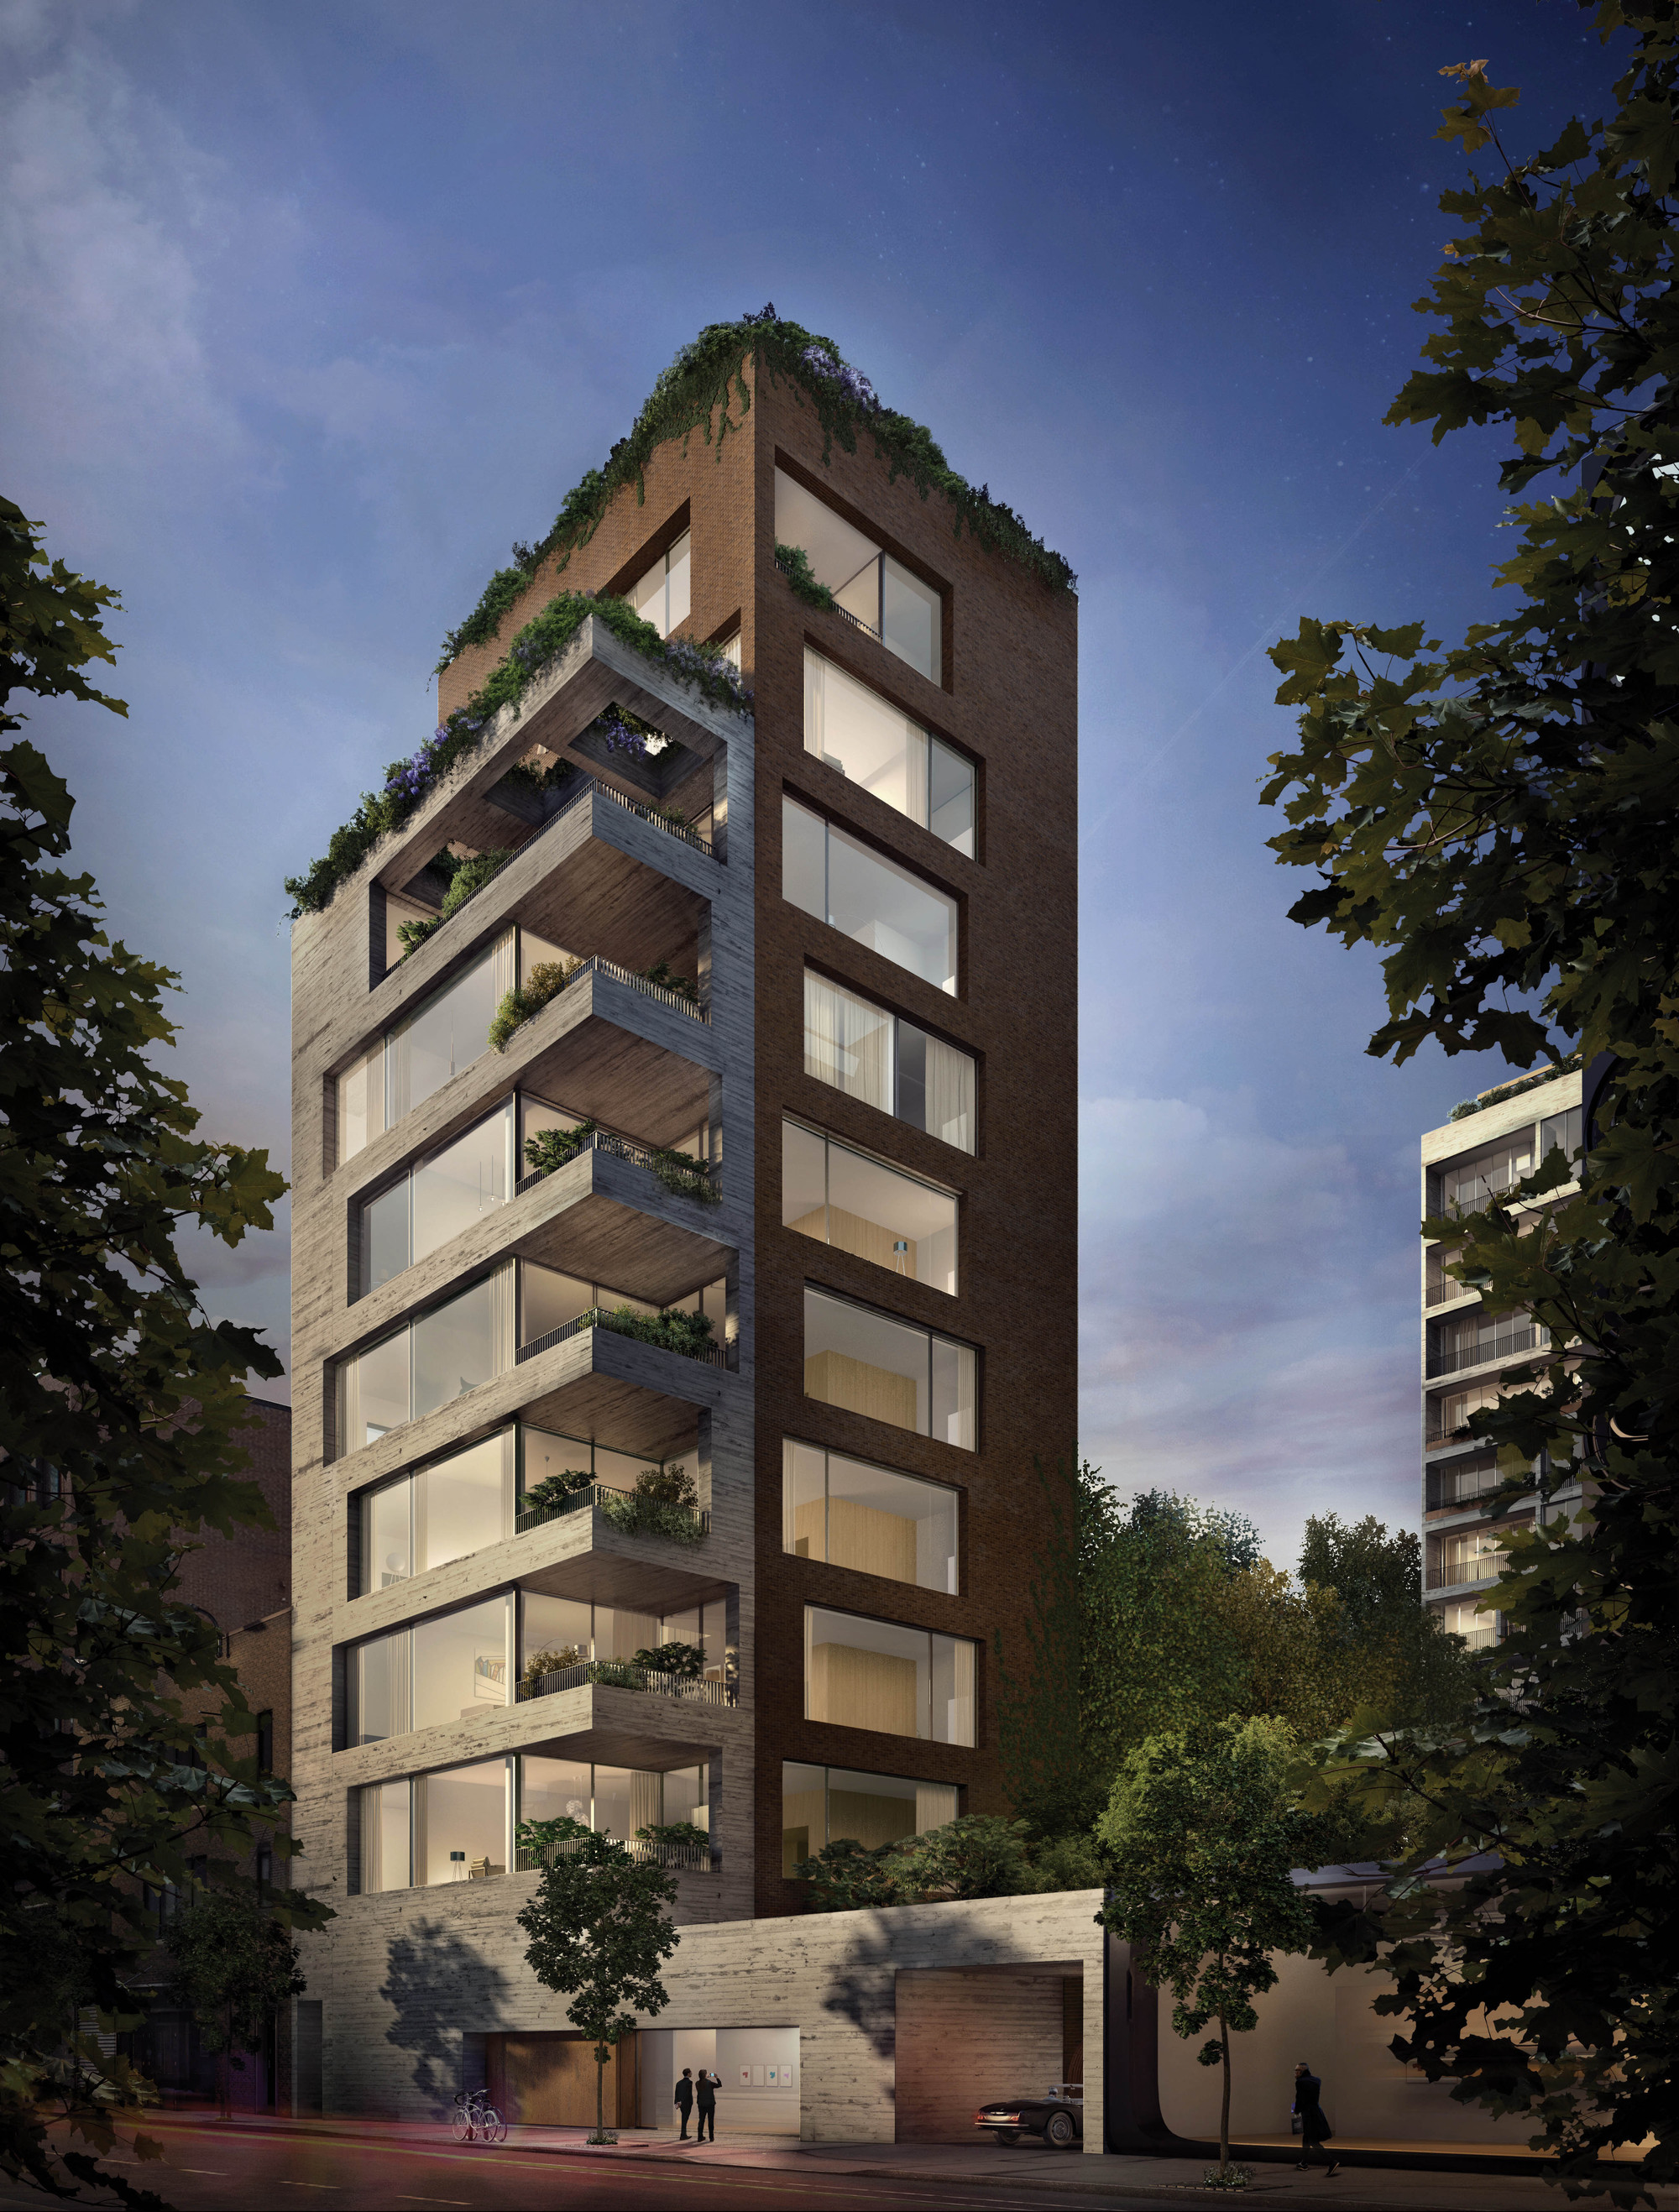 Isay Weinfeld Unveils The Design For His First Project In New York City |  ArchDaily